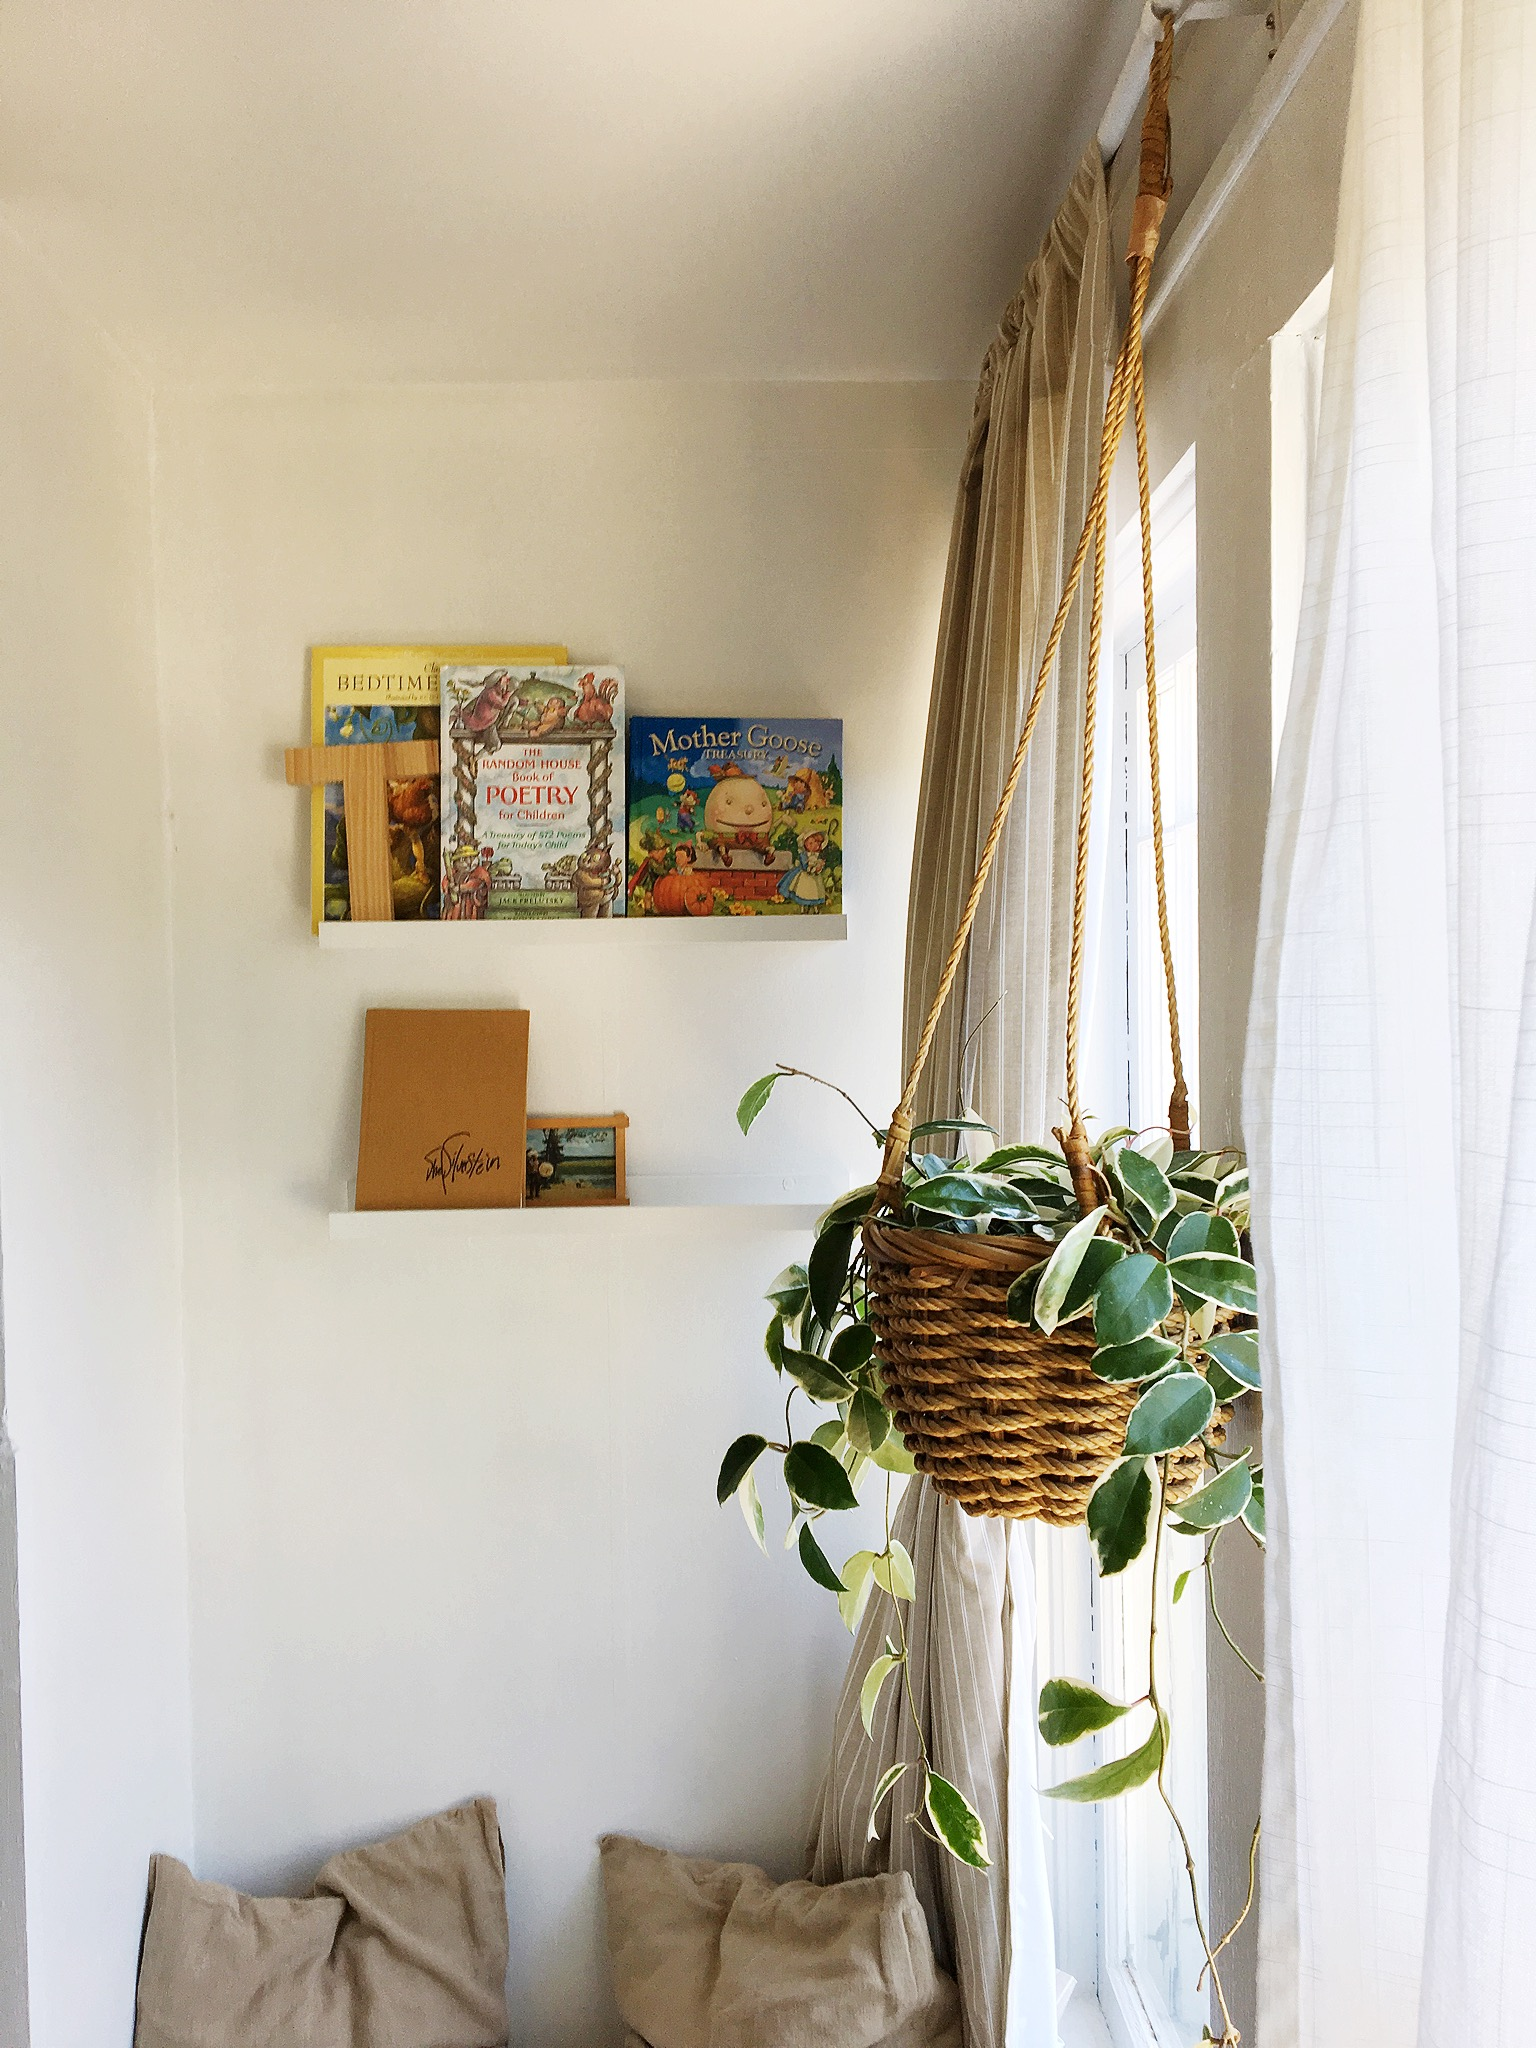 Speaking of loving restoration, we got to hang out in  Emily Netz's beautiful historic home  again. This time for a  home styling session  for her little boys' room.